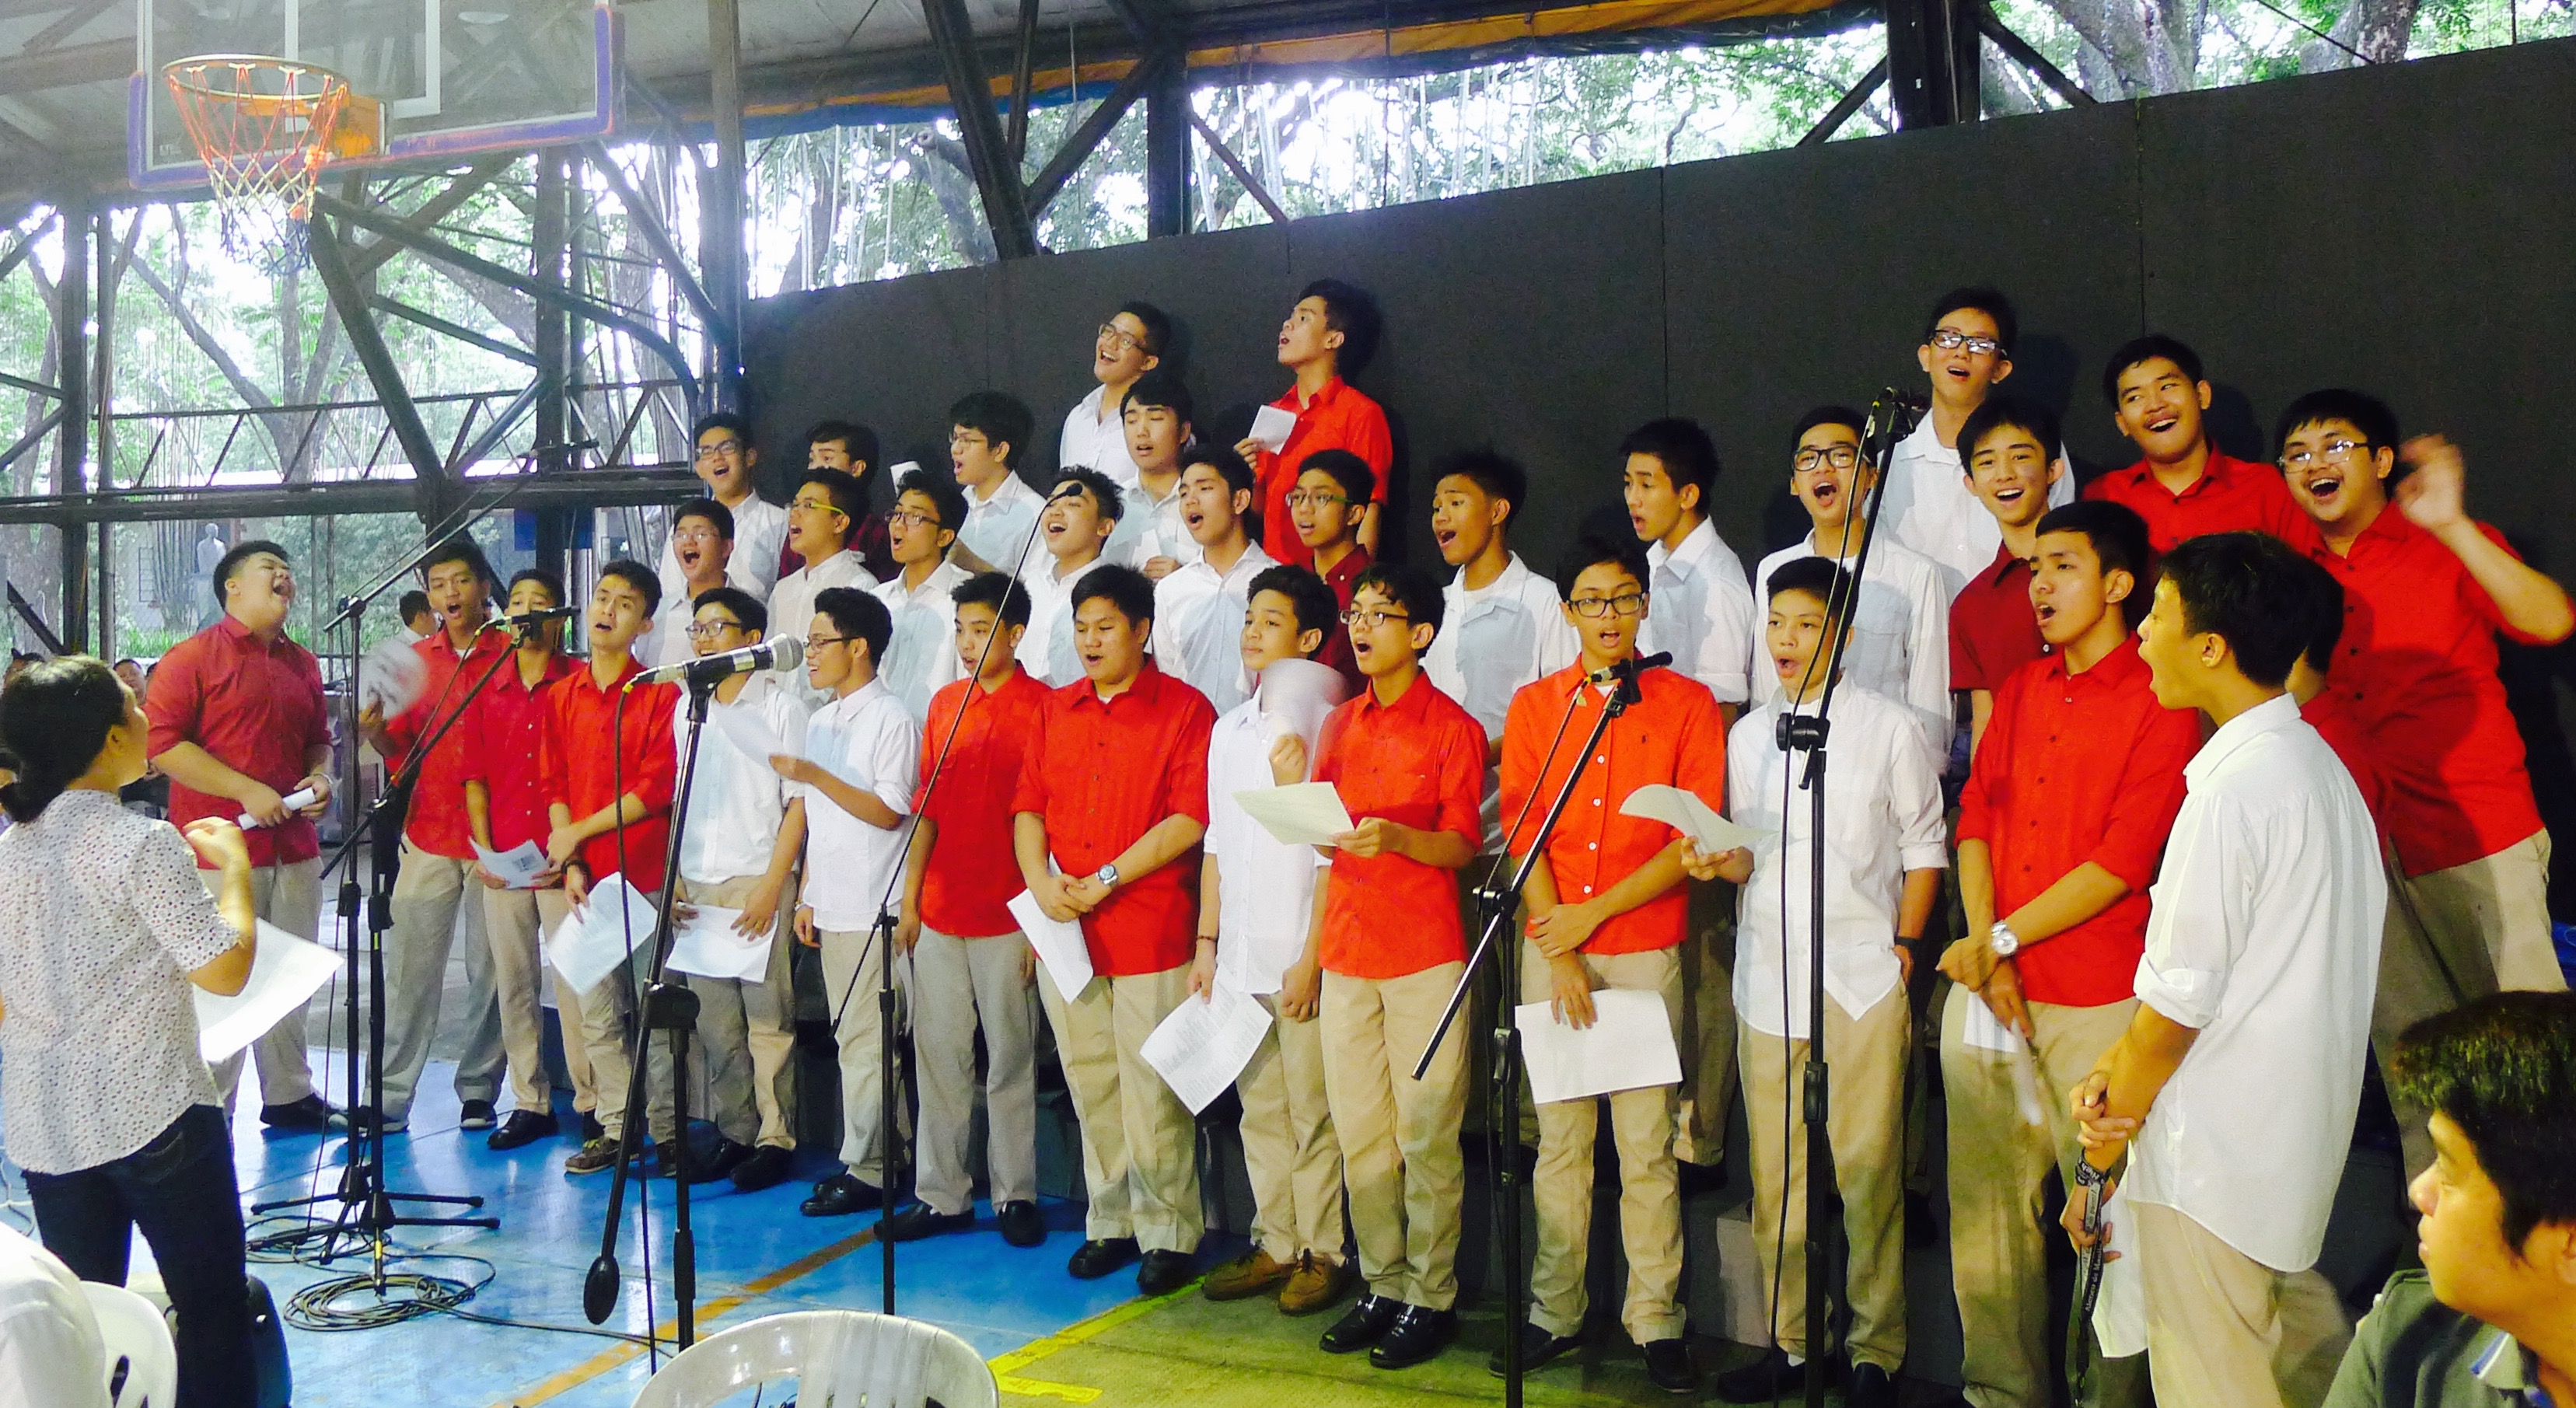 The Ateneo HS Community Choir at the Mass of the Holy Spirit, AHS Covered Courts. 19 June 2015